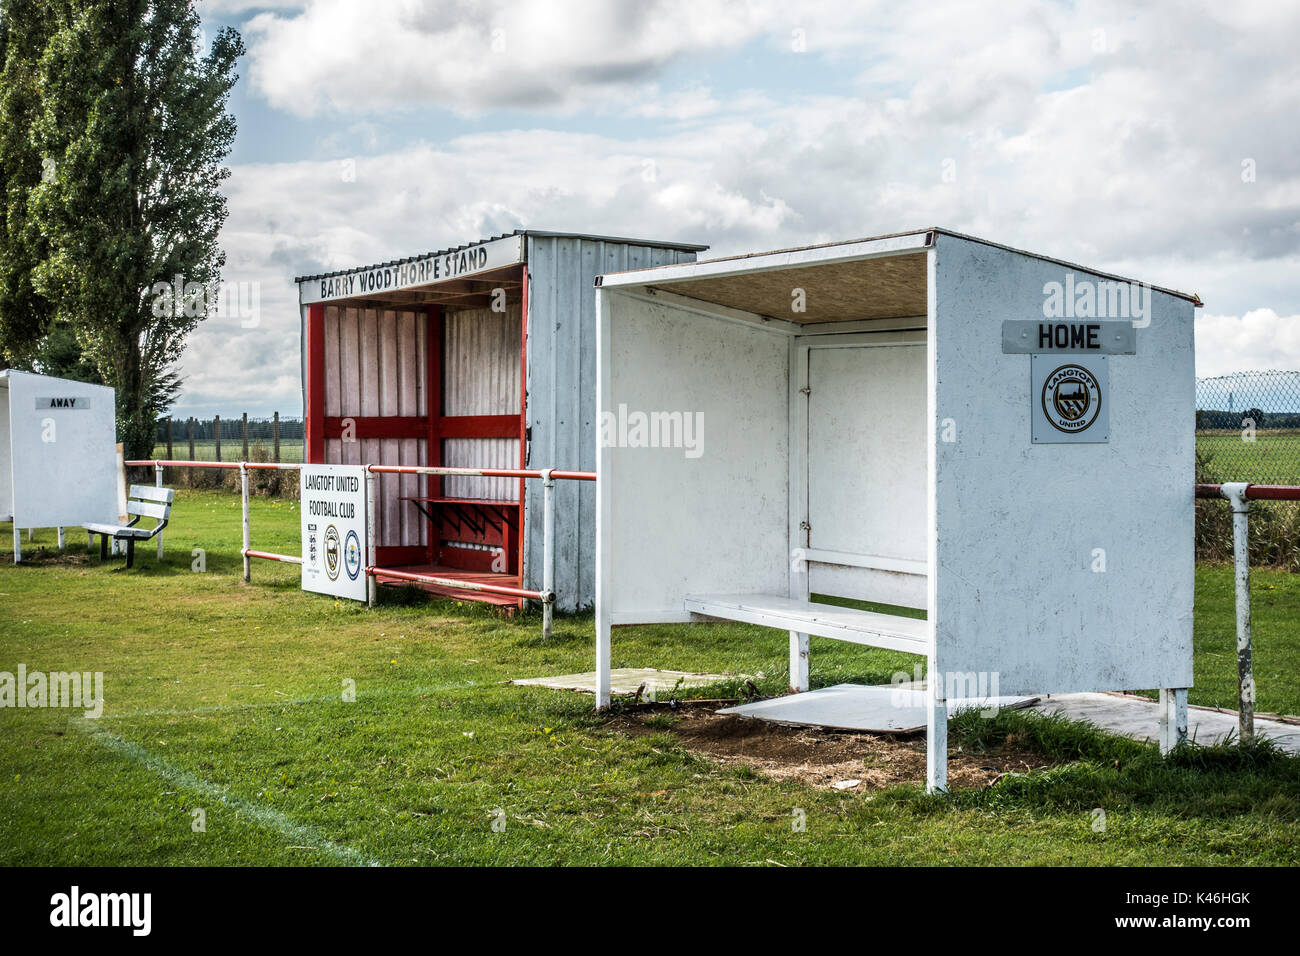 Grass roots football. Basic shelters and match stand for teams and personnel. Langtoft United Football Club home ground, England, UK. - Stock Image